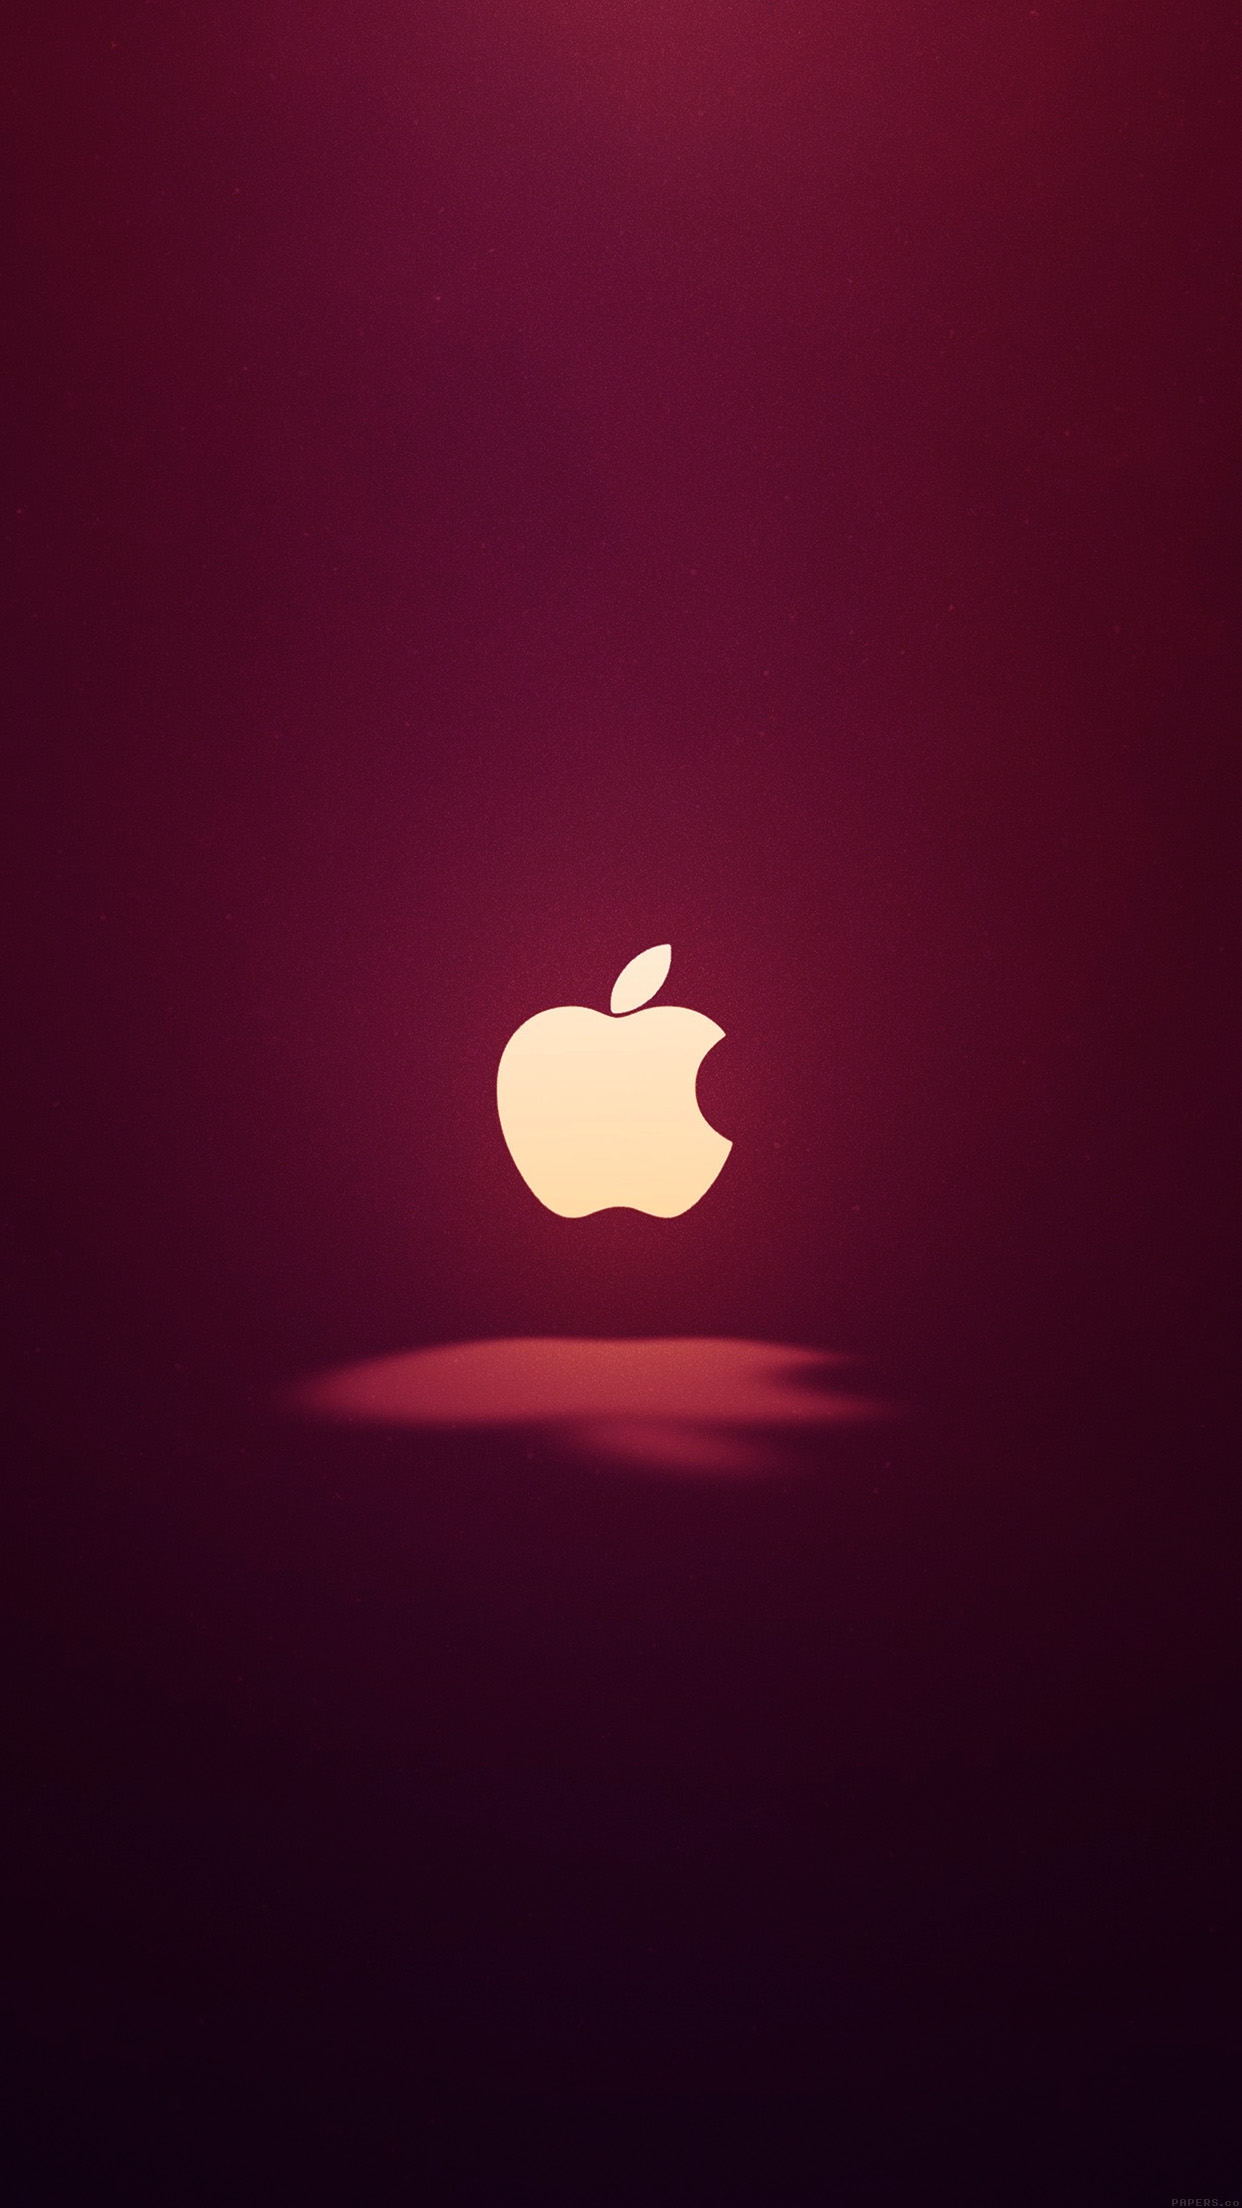 10 Top Iphone Apple Logo Wallpaper FULL HD 1080p For PC Desktop